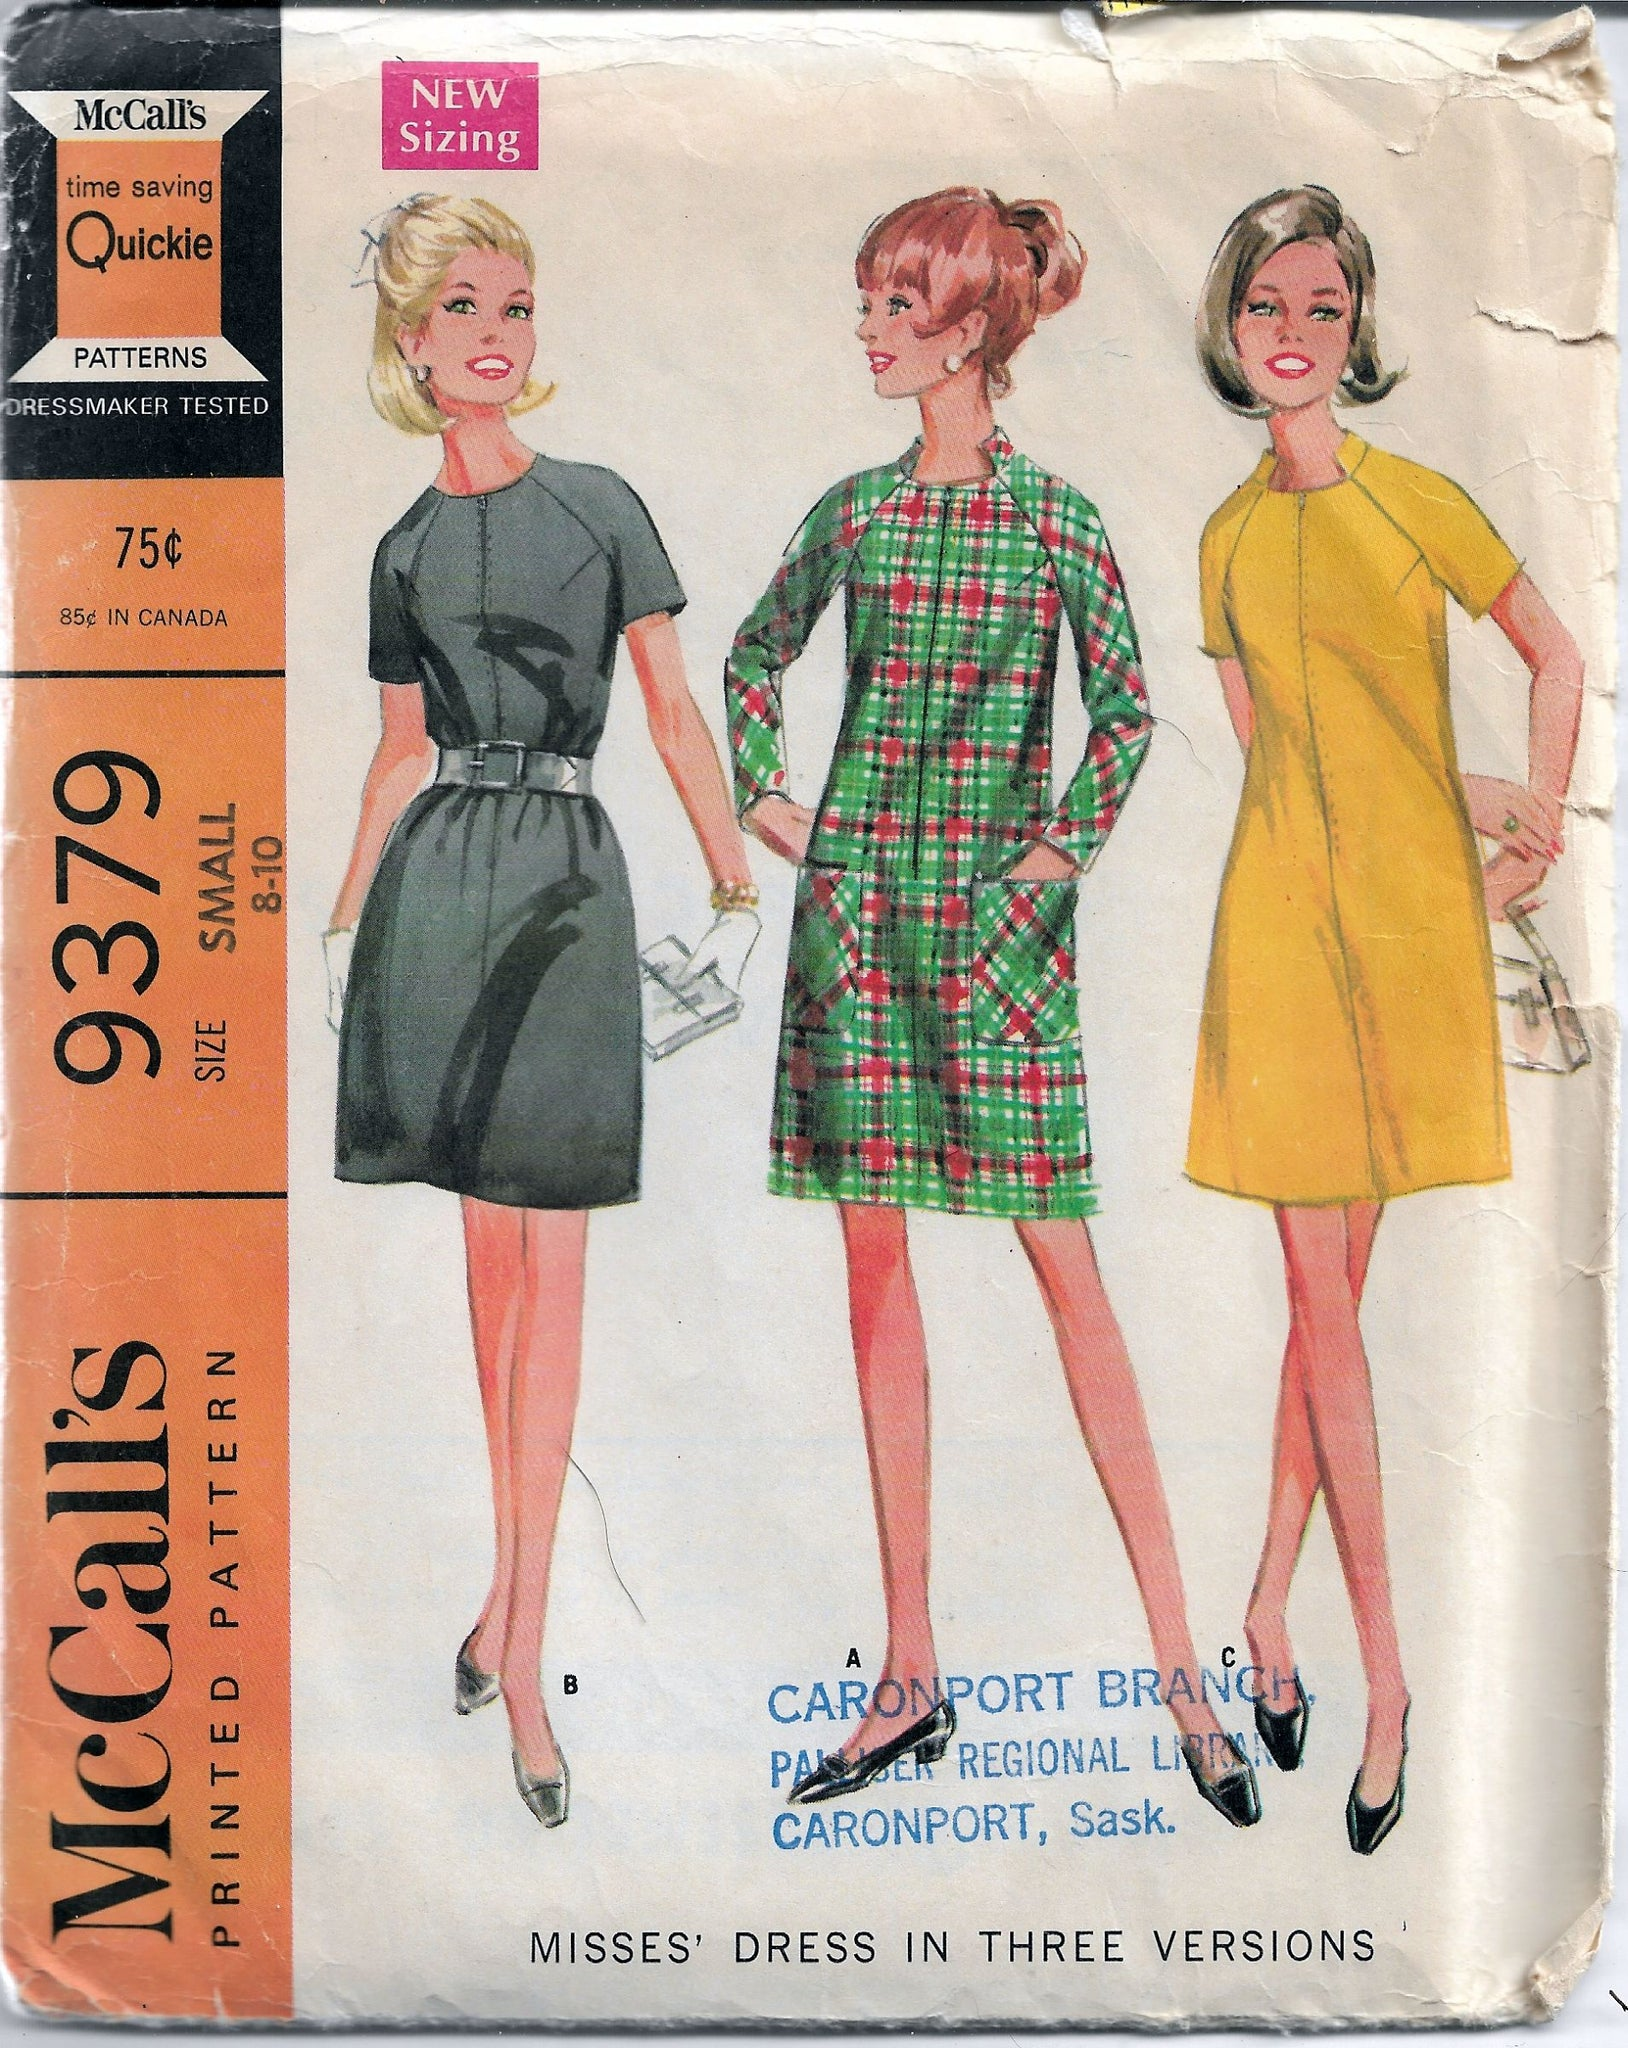 mccalls 9379 dress vintage pattern 1960s